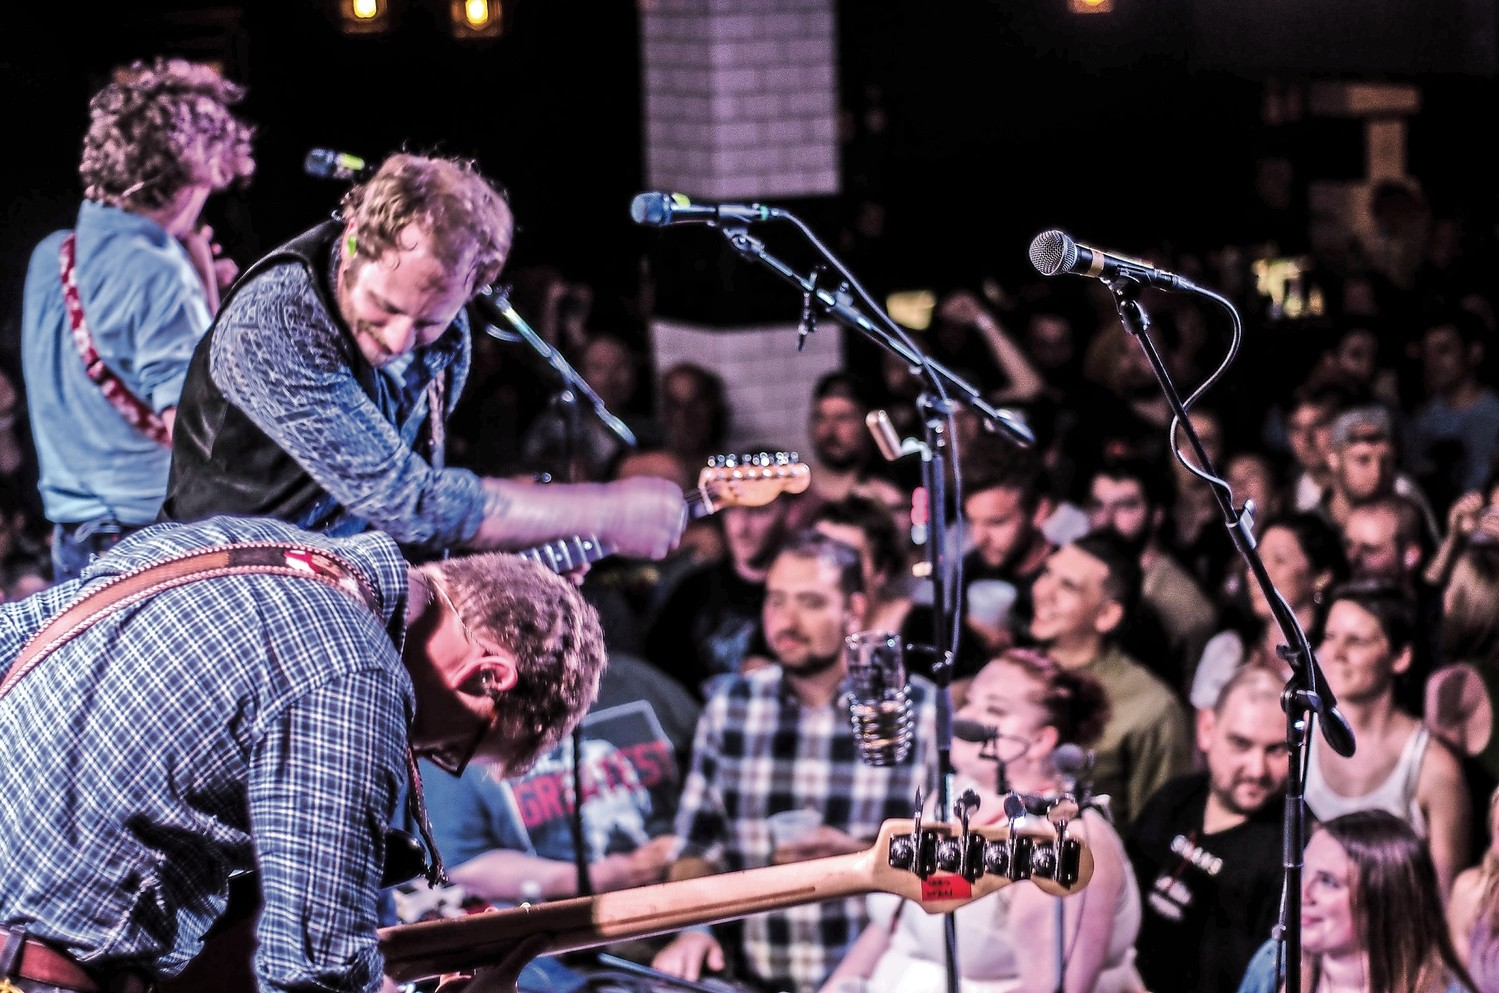 "Deer Tick, a popular alternative rock band from Providence, Rhode Island, headlined the Tommy Brull Foundation's Shine A Light Music Series at Junction in June. The band released seven albums and a number of EPs over the past decade, including 2013's ""Negativity"" and 2017's ""Deer Tick, Vol. 1 & 2."""